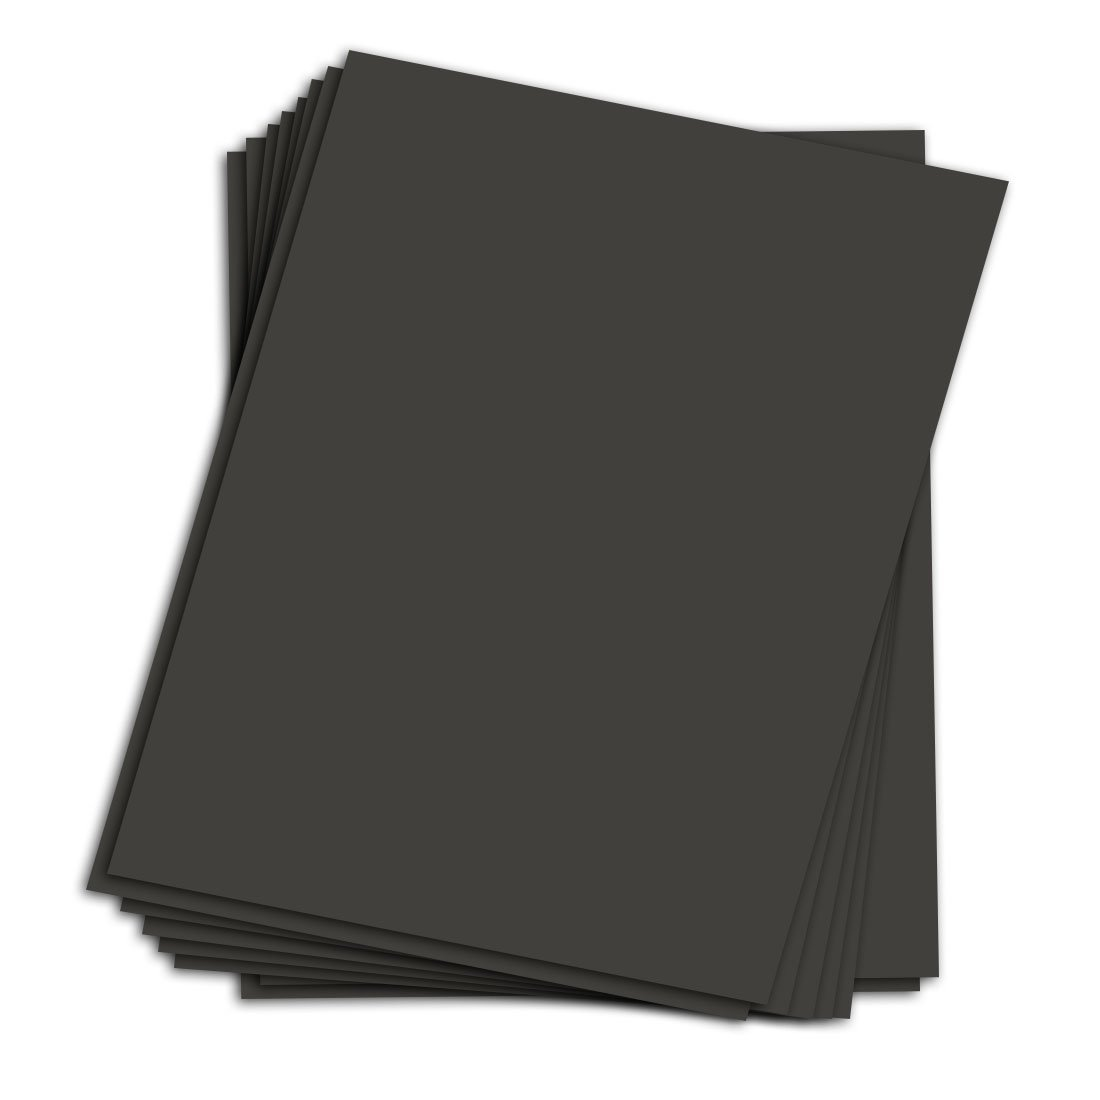 25 Sheets Black Chipboard | Medium Weight Chipboard Sheets | 30 pt (624 gsm) | 8.5 x 11 Inches